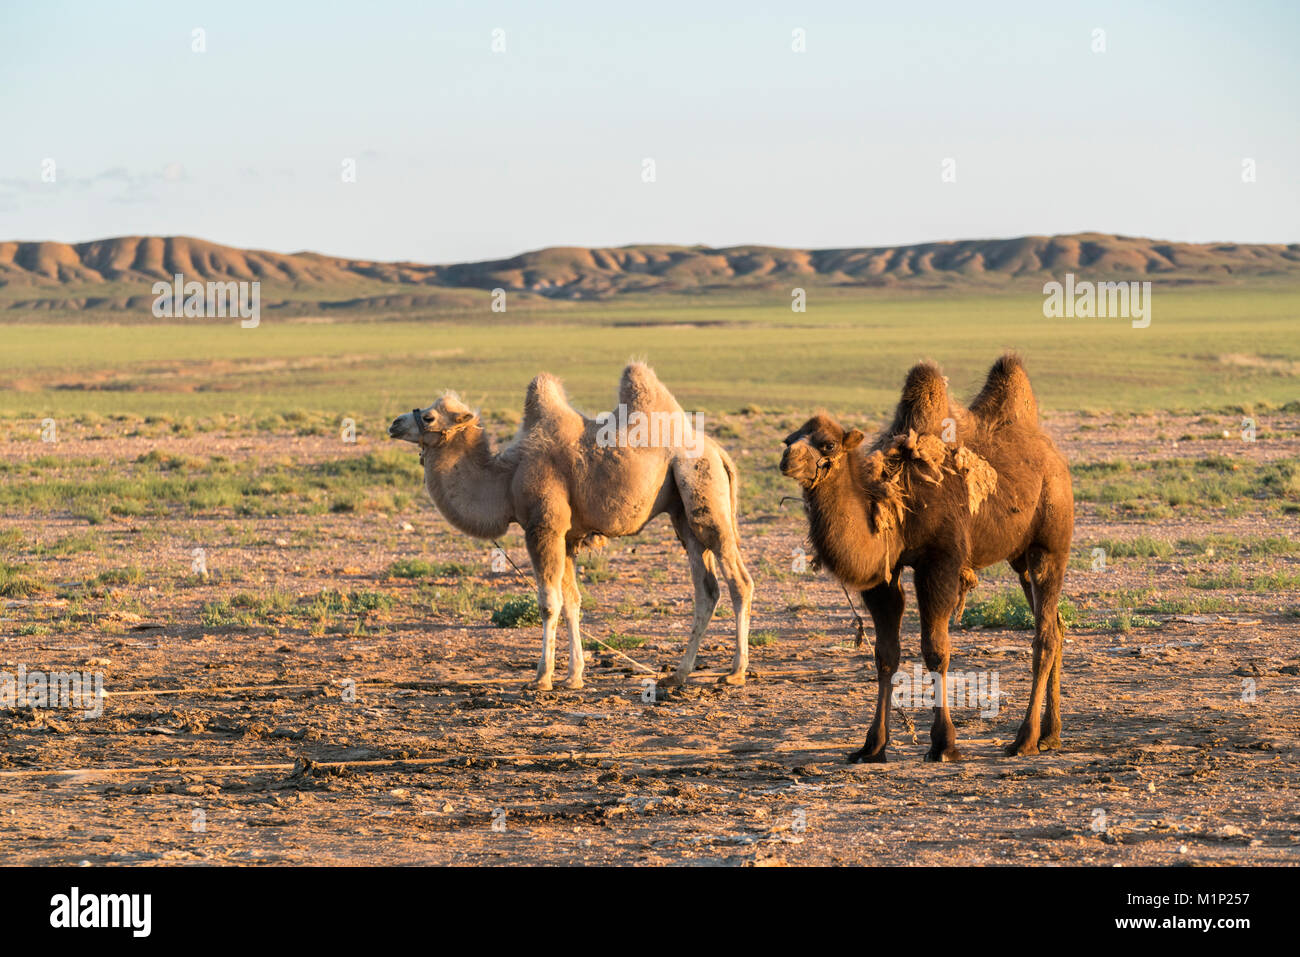 Two camels in Gobi desert, Ulziit, Middle Gobi province, Mongolia, Central Asia, Asia - Stock Image